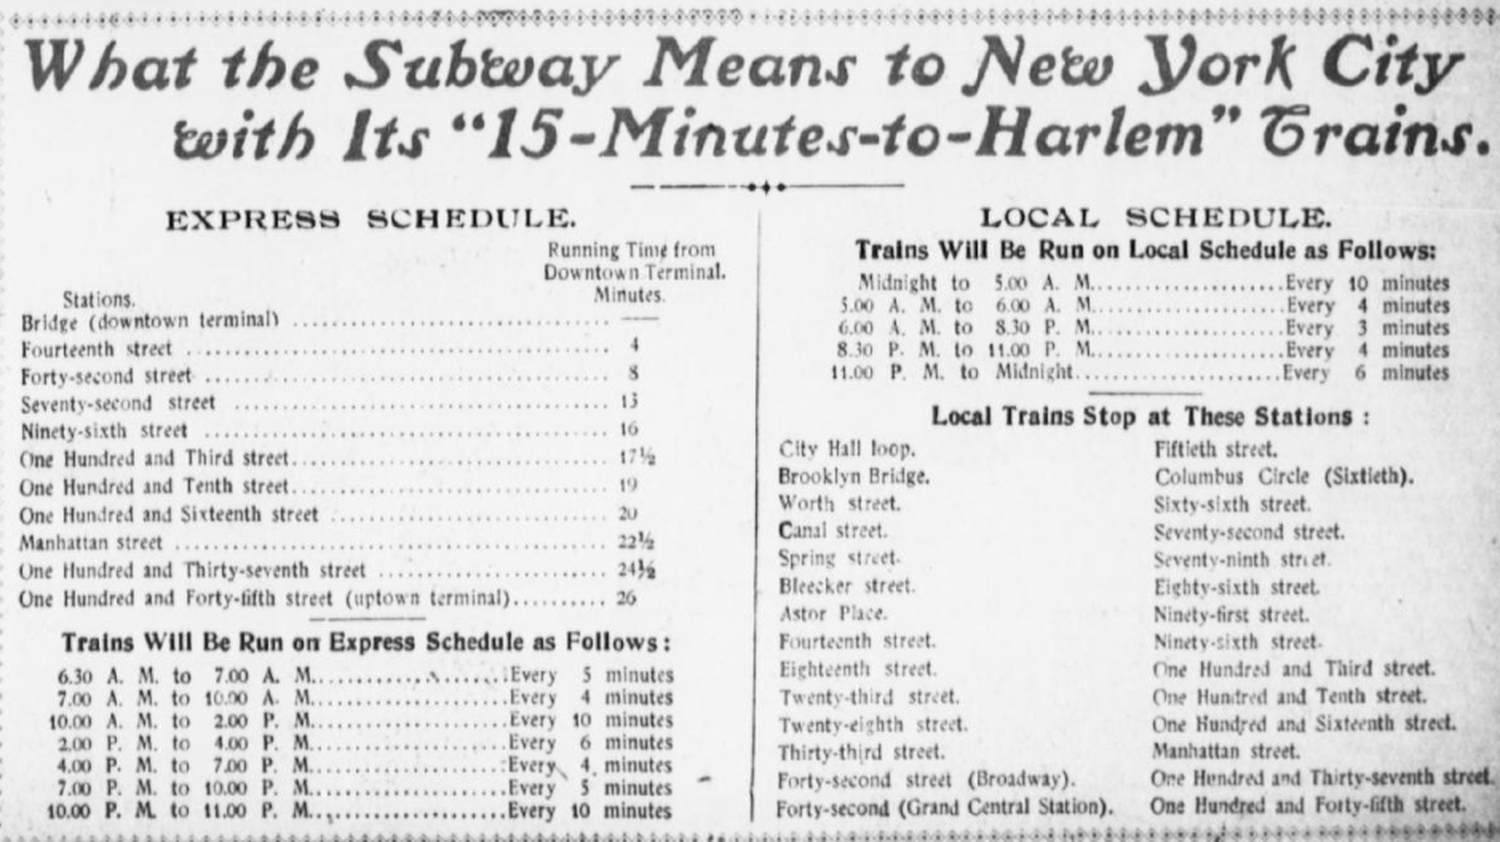 When The New York City Subway Opened On October 27, 1904